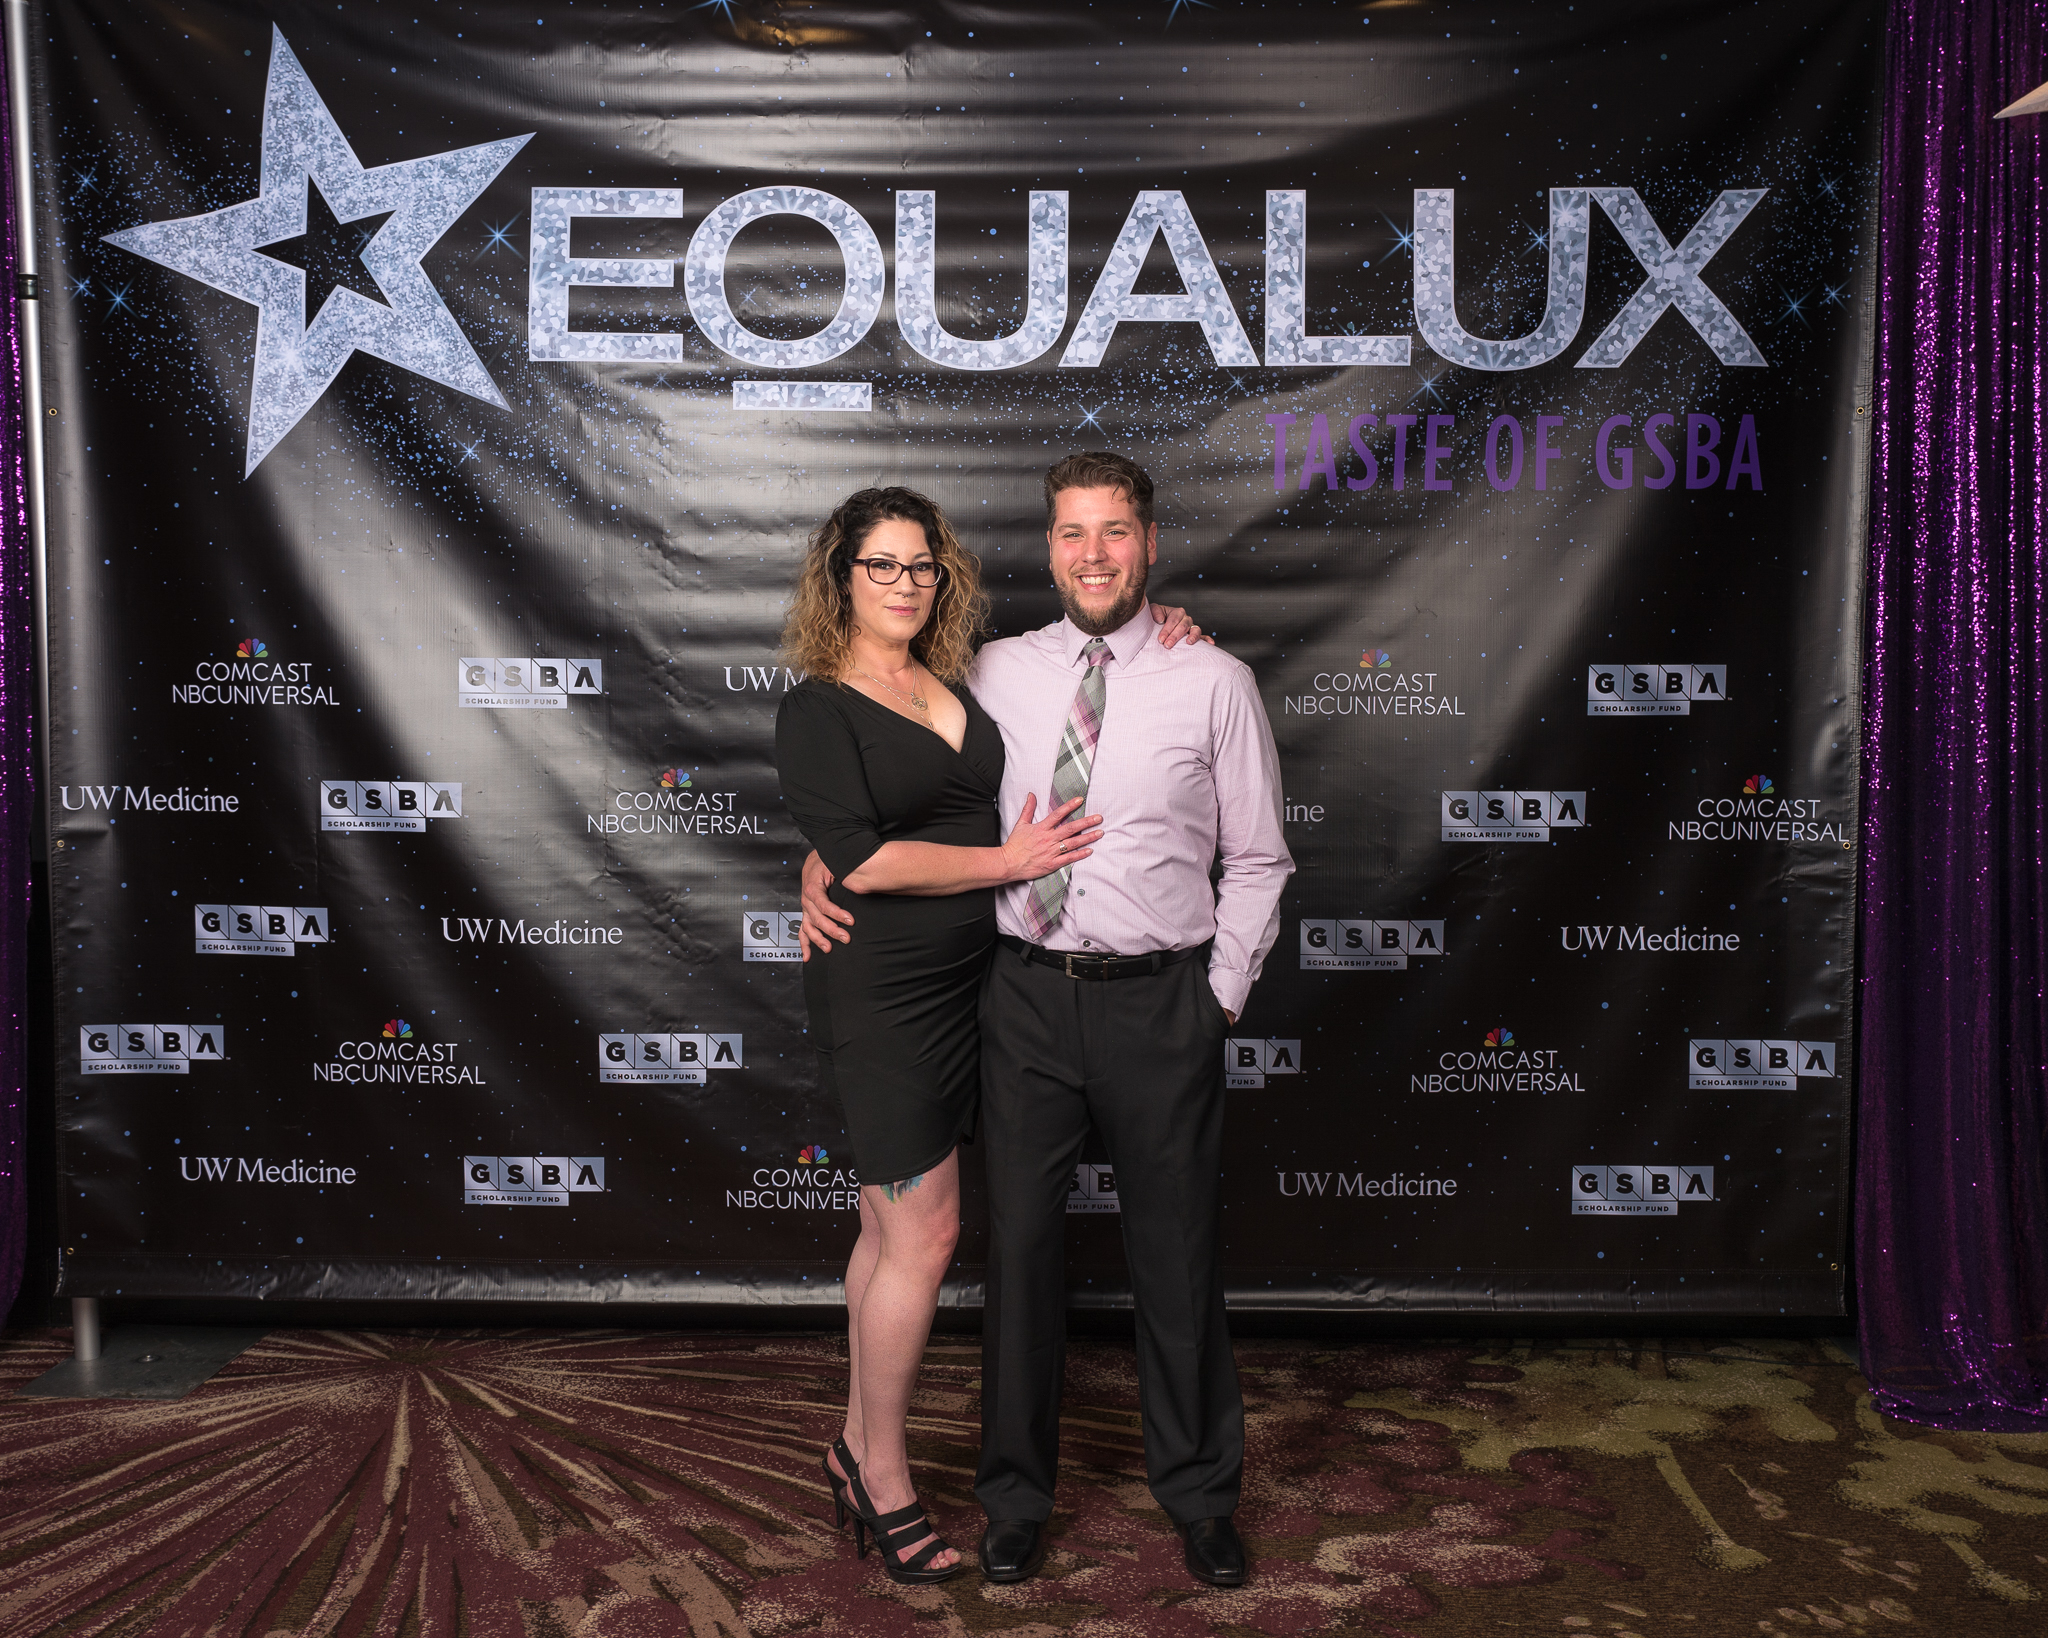 111718_GSBA EQUALUX at The Westin Seattle (Credit- Nate Gowdy)-102.jpg